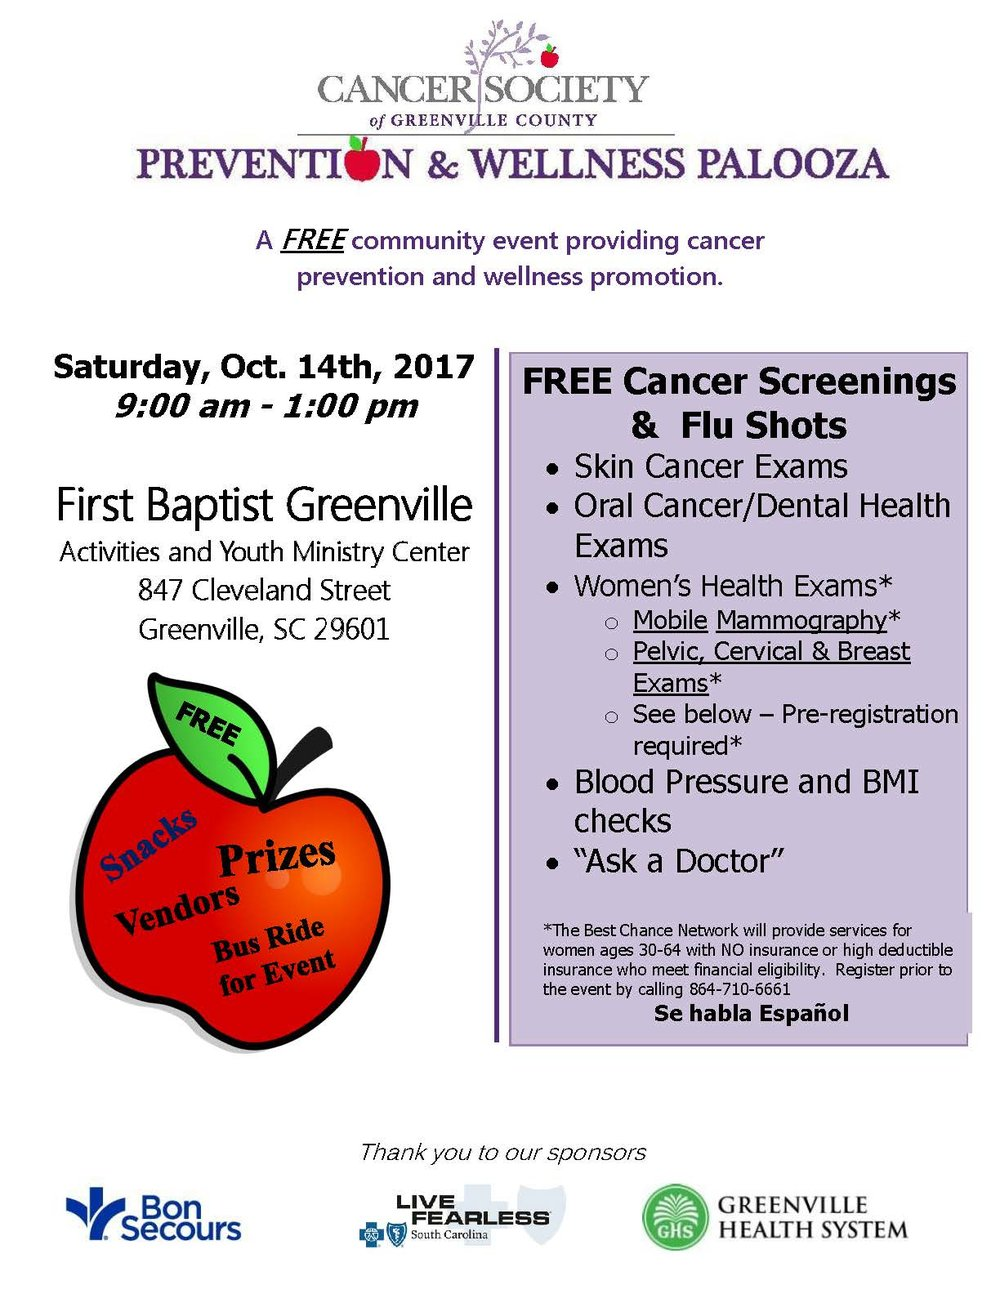 Prevention Palooza 2017 Flyer.jpg